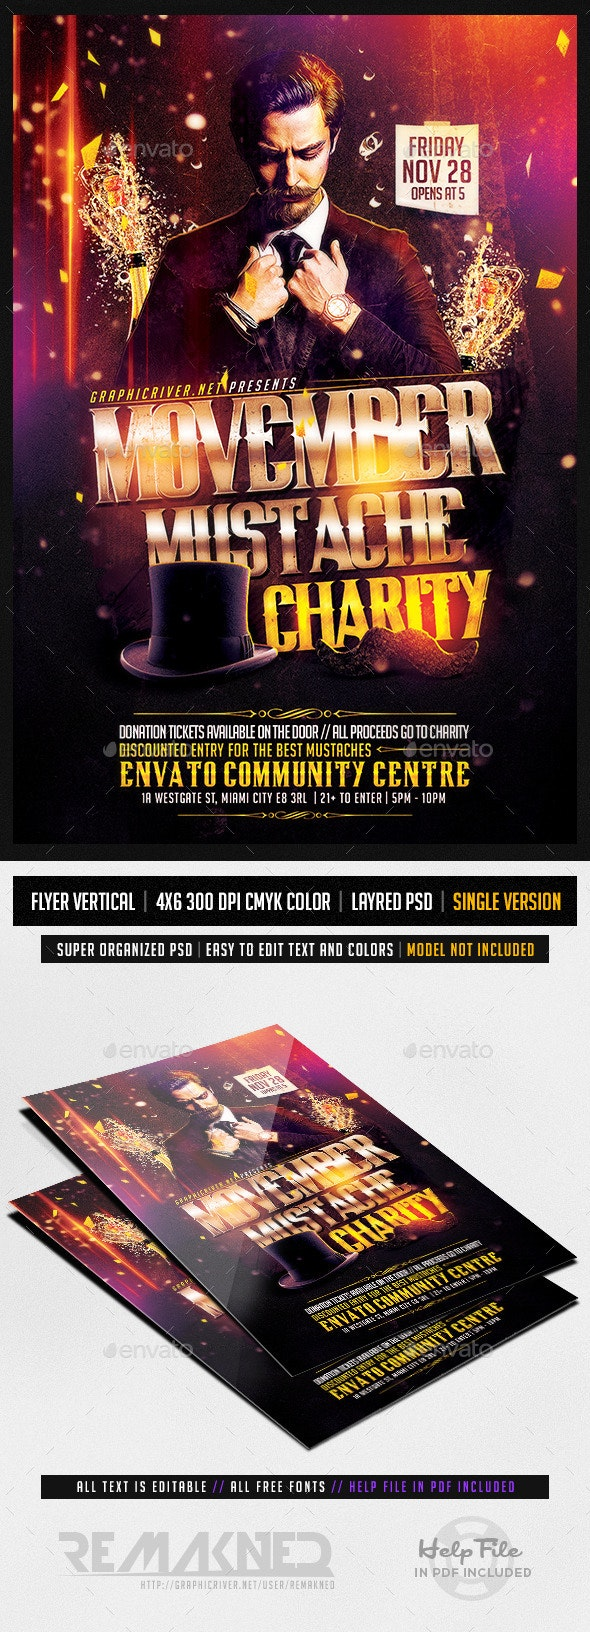 Movember Mustache Charity | Flyer Template PSD - Events Flyers